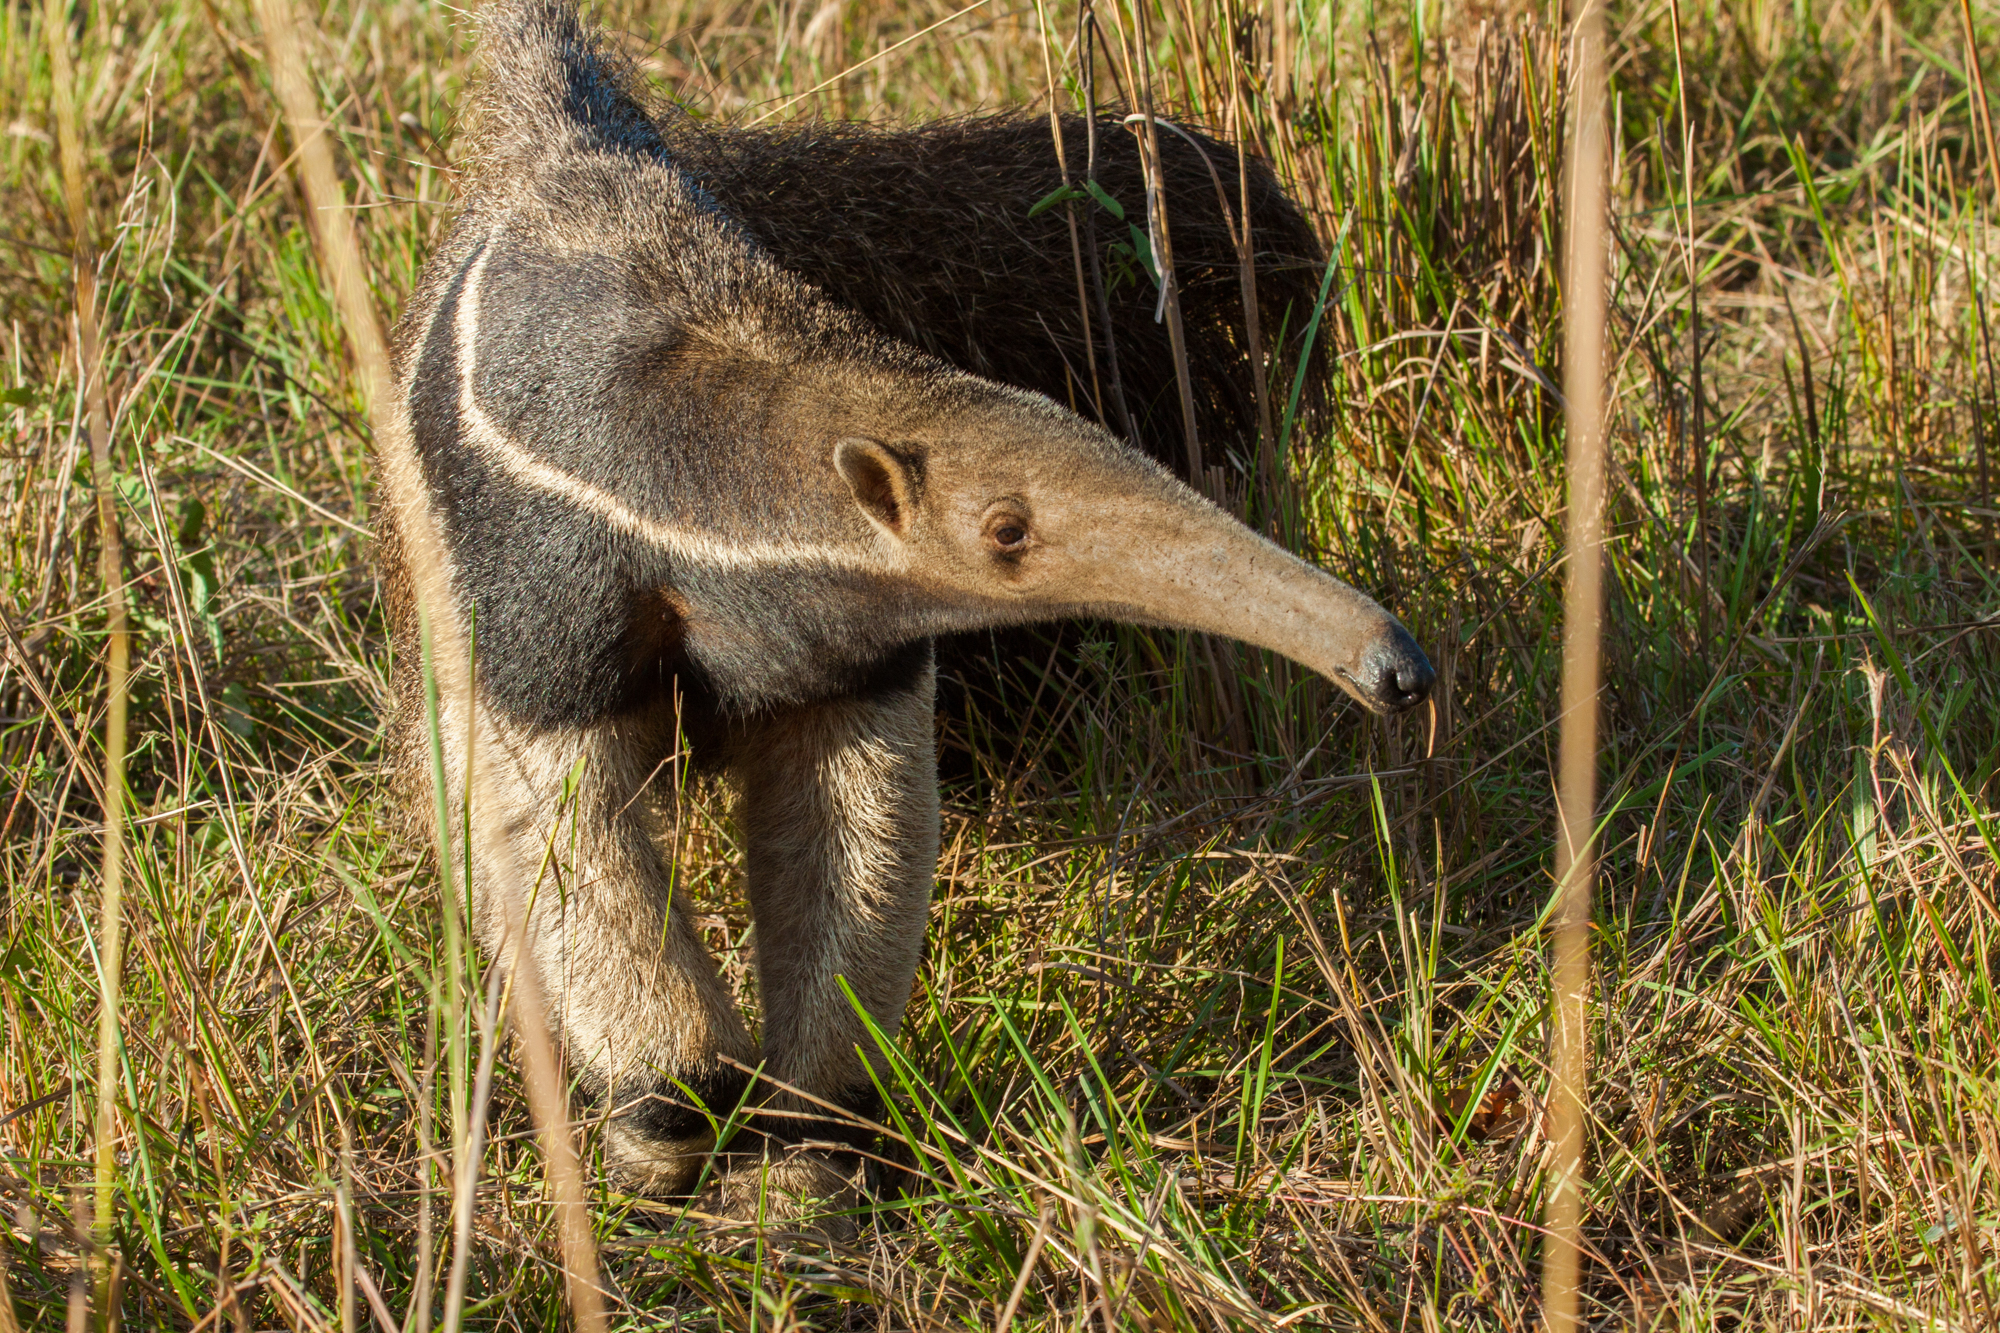 GIANT ANTEATER (M. tridactyla)